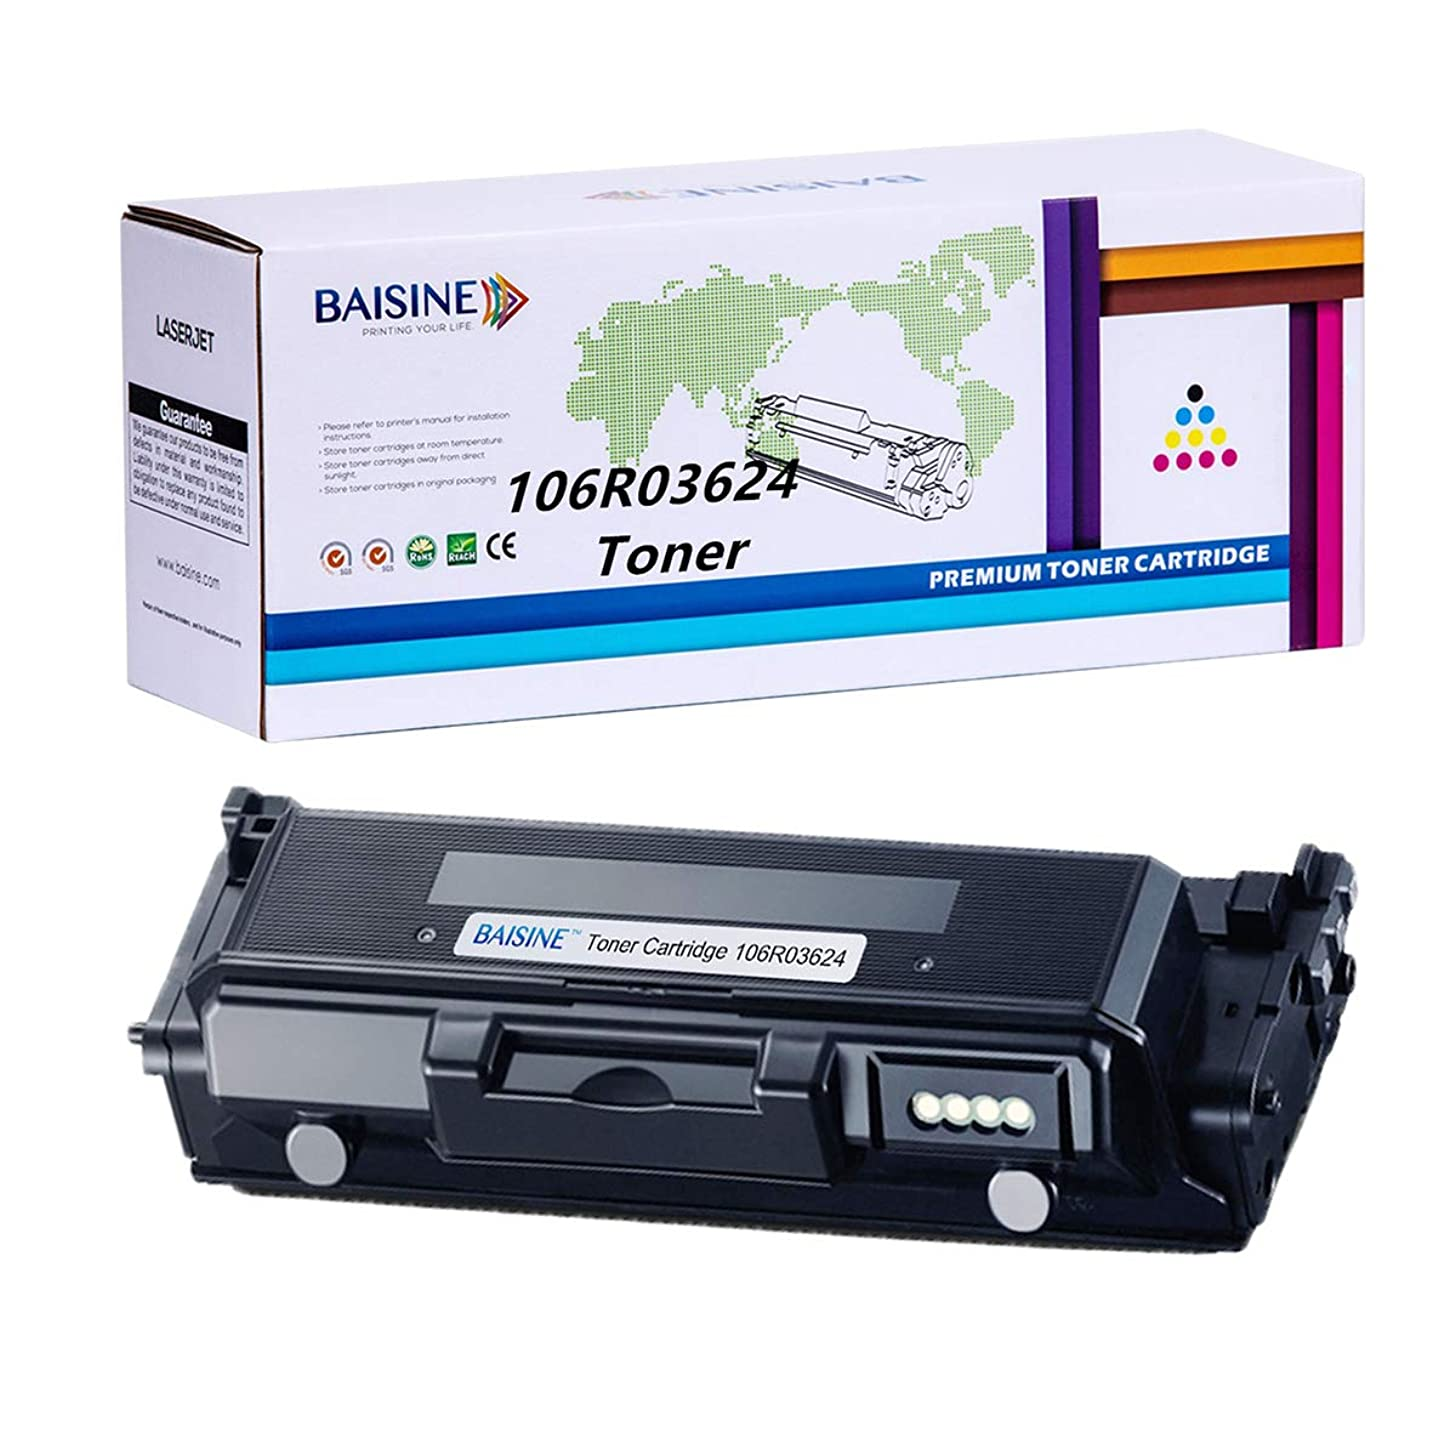 BAISINE Compatible Toner Cartridges Replacement for Xerox 106R03624 Toner Xerox Phaser 3330 WorkCentre 3335 3345 Printer Ink - 106R03623 - Extra High Yield 15,000 Pages (Black, 1 Pack)